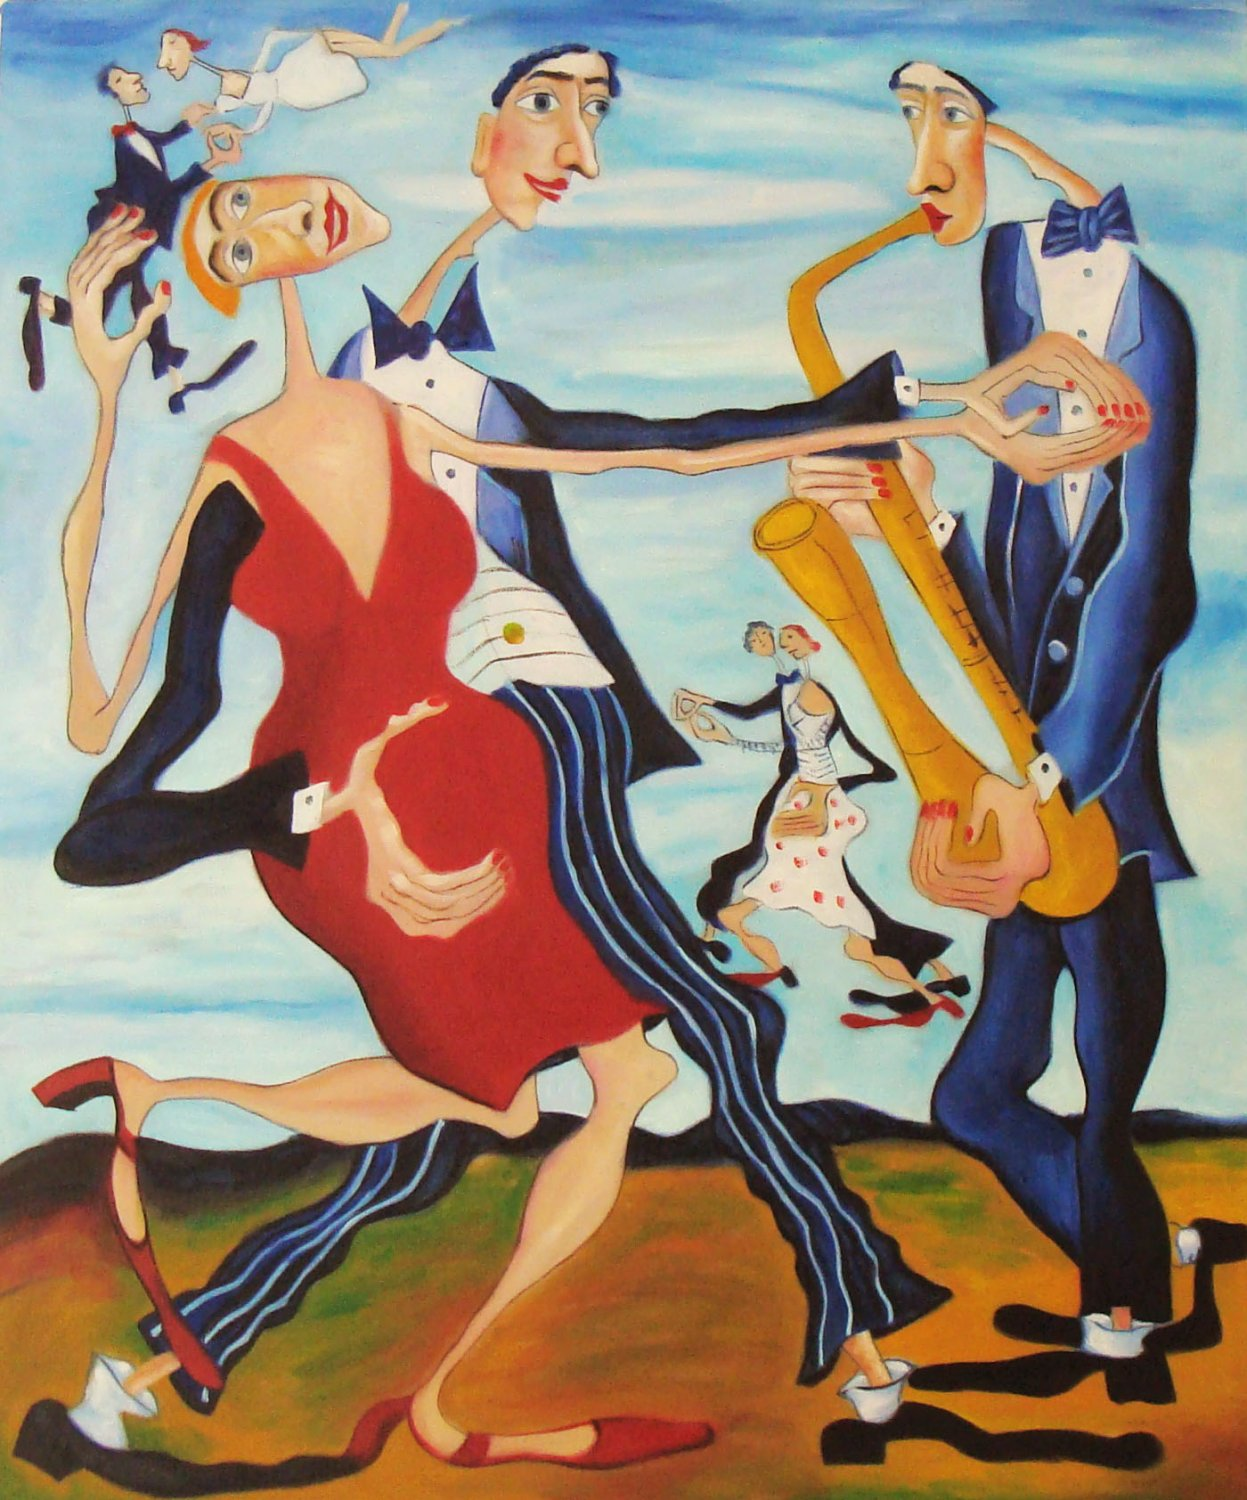 ORIGINAL MODERN Surrealism OIL PAINTING own REAL ART!